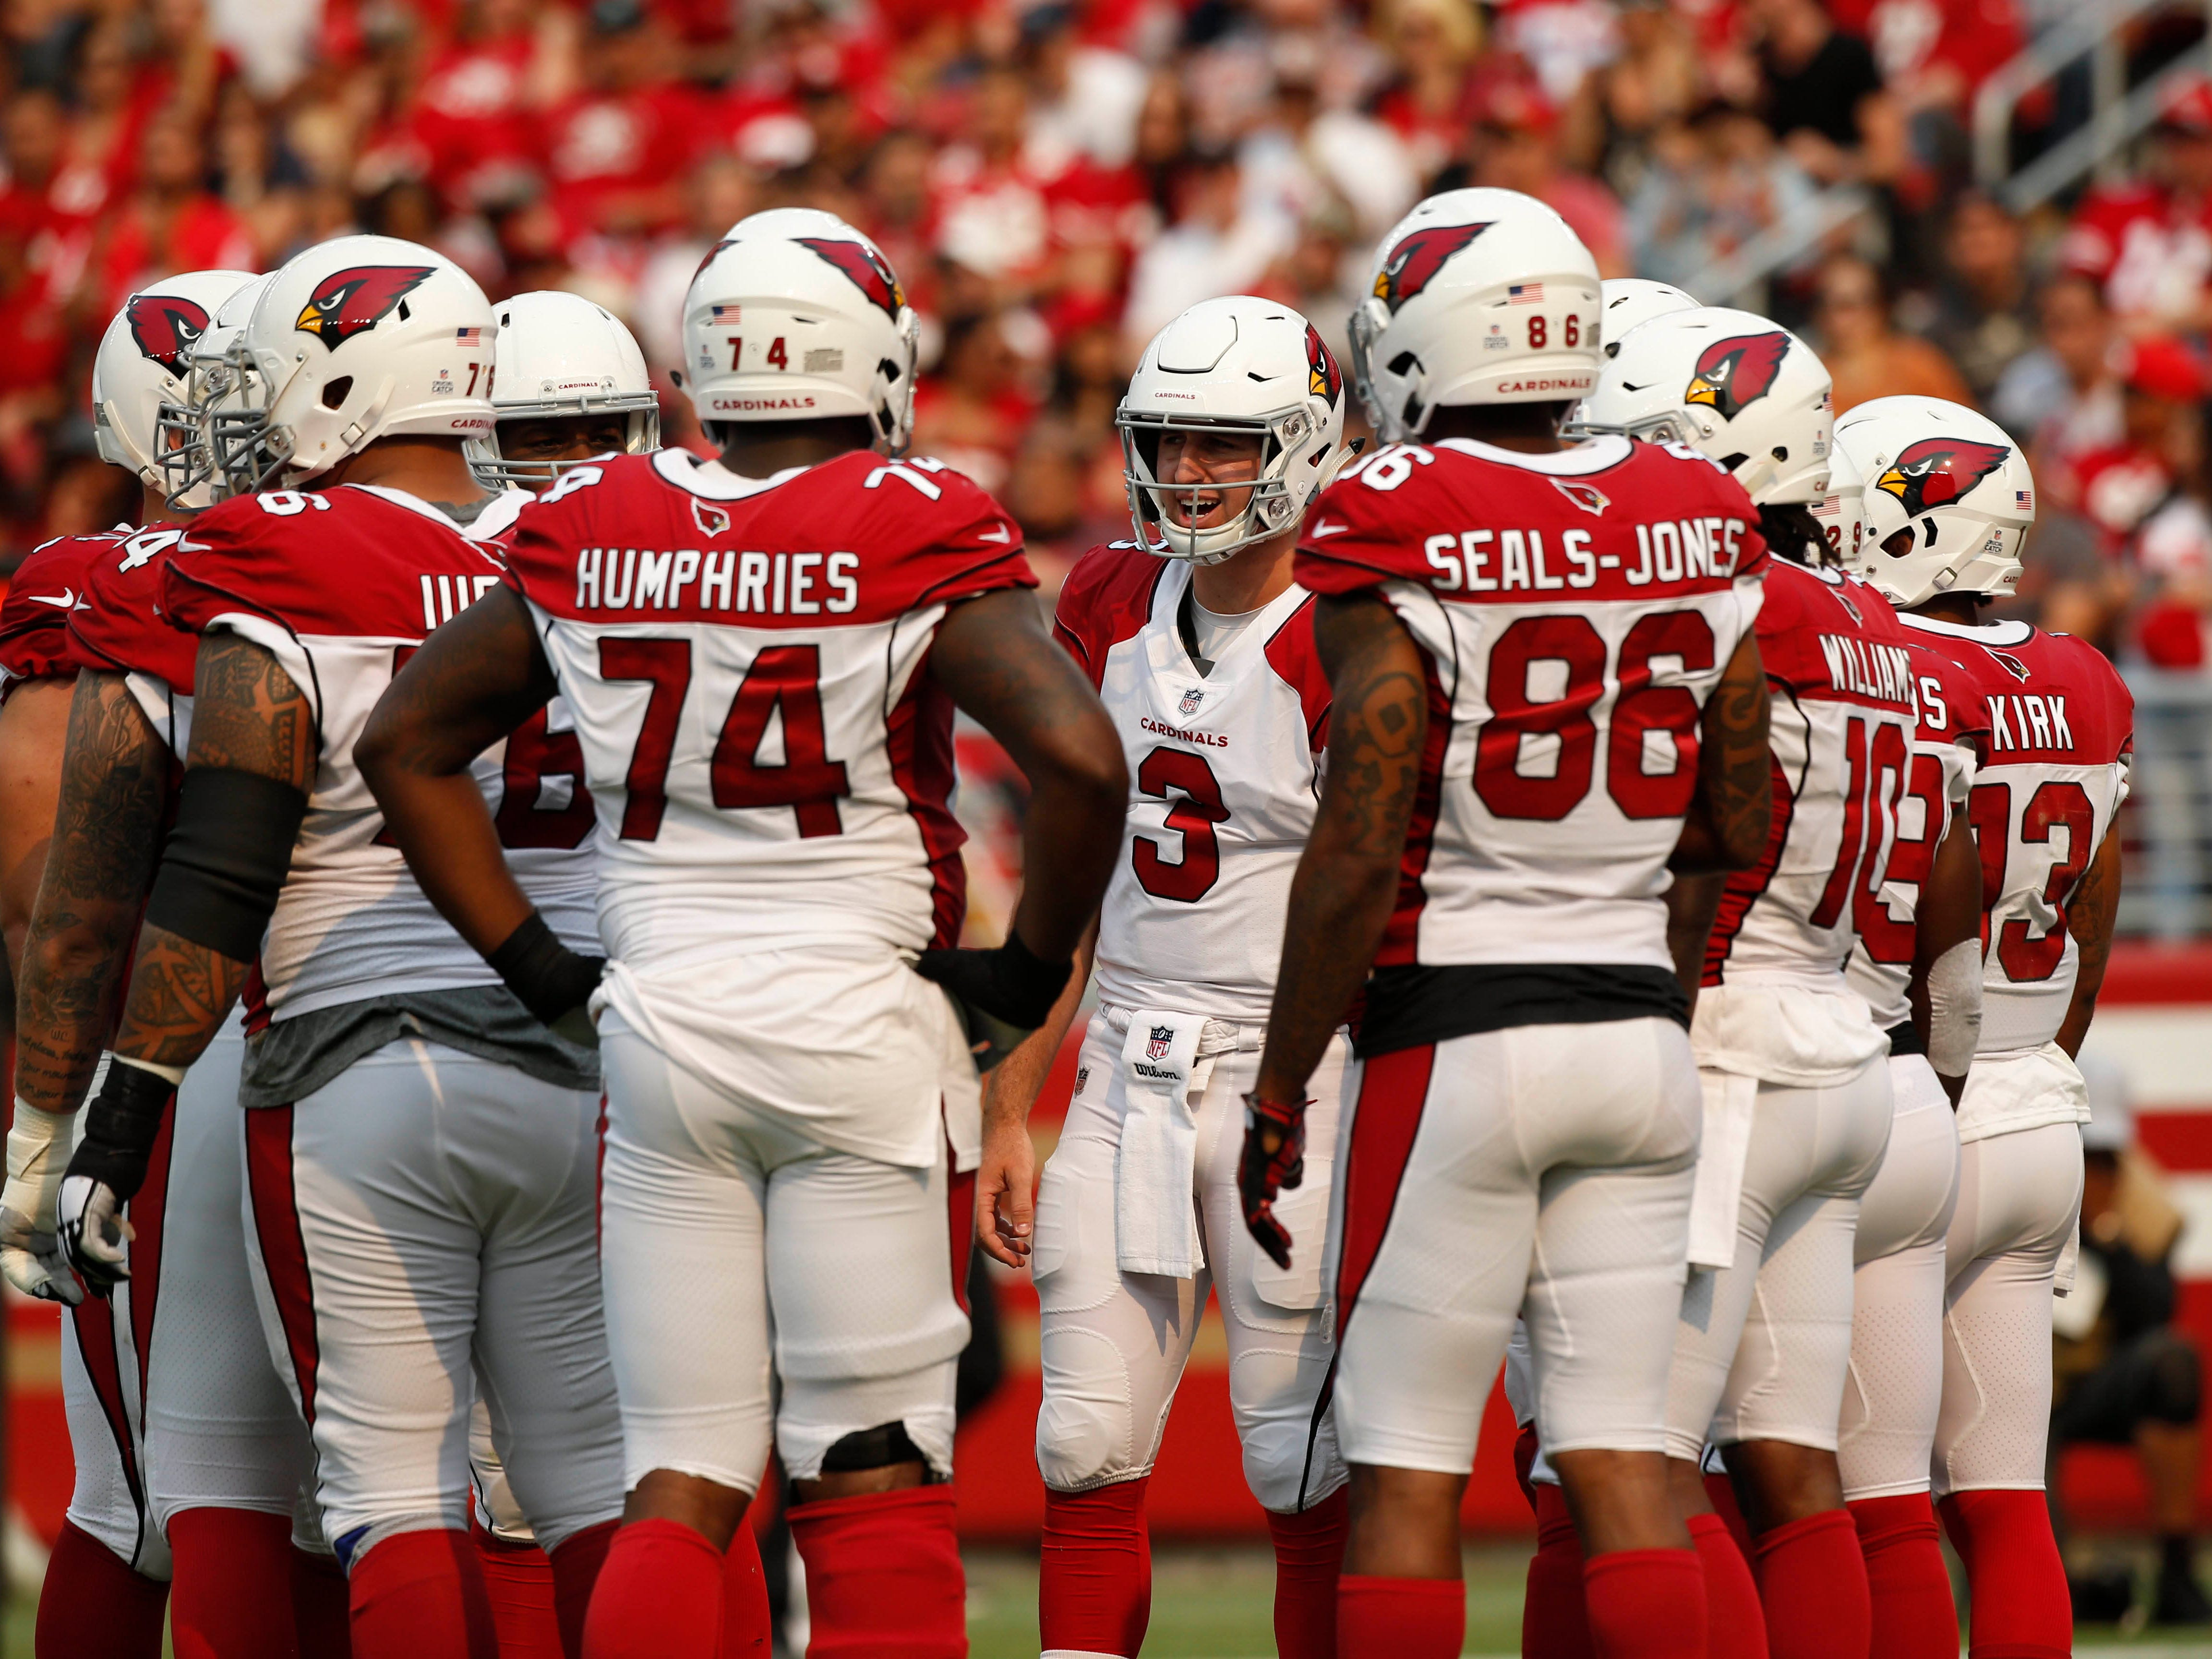 Oct 7, 2018; Santa Clara, CA, USA; Arizona Cardinals quarterback Josh Rosen (3) stands in the huddle against the San Francisco 49ers in the second quarter at Levi's Stadium.